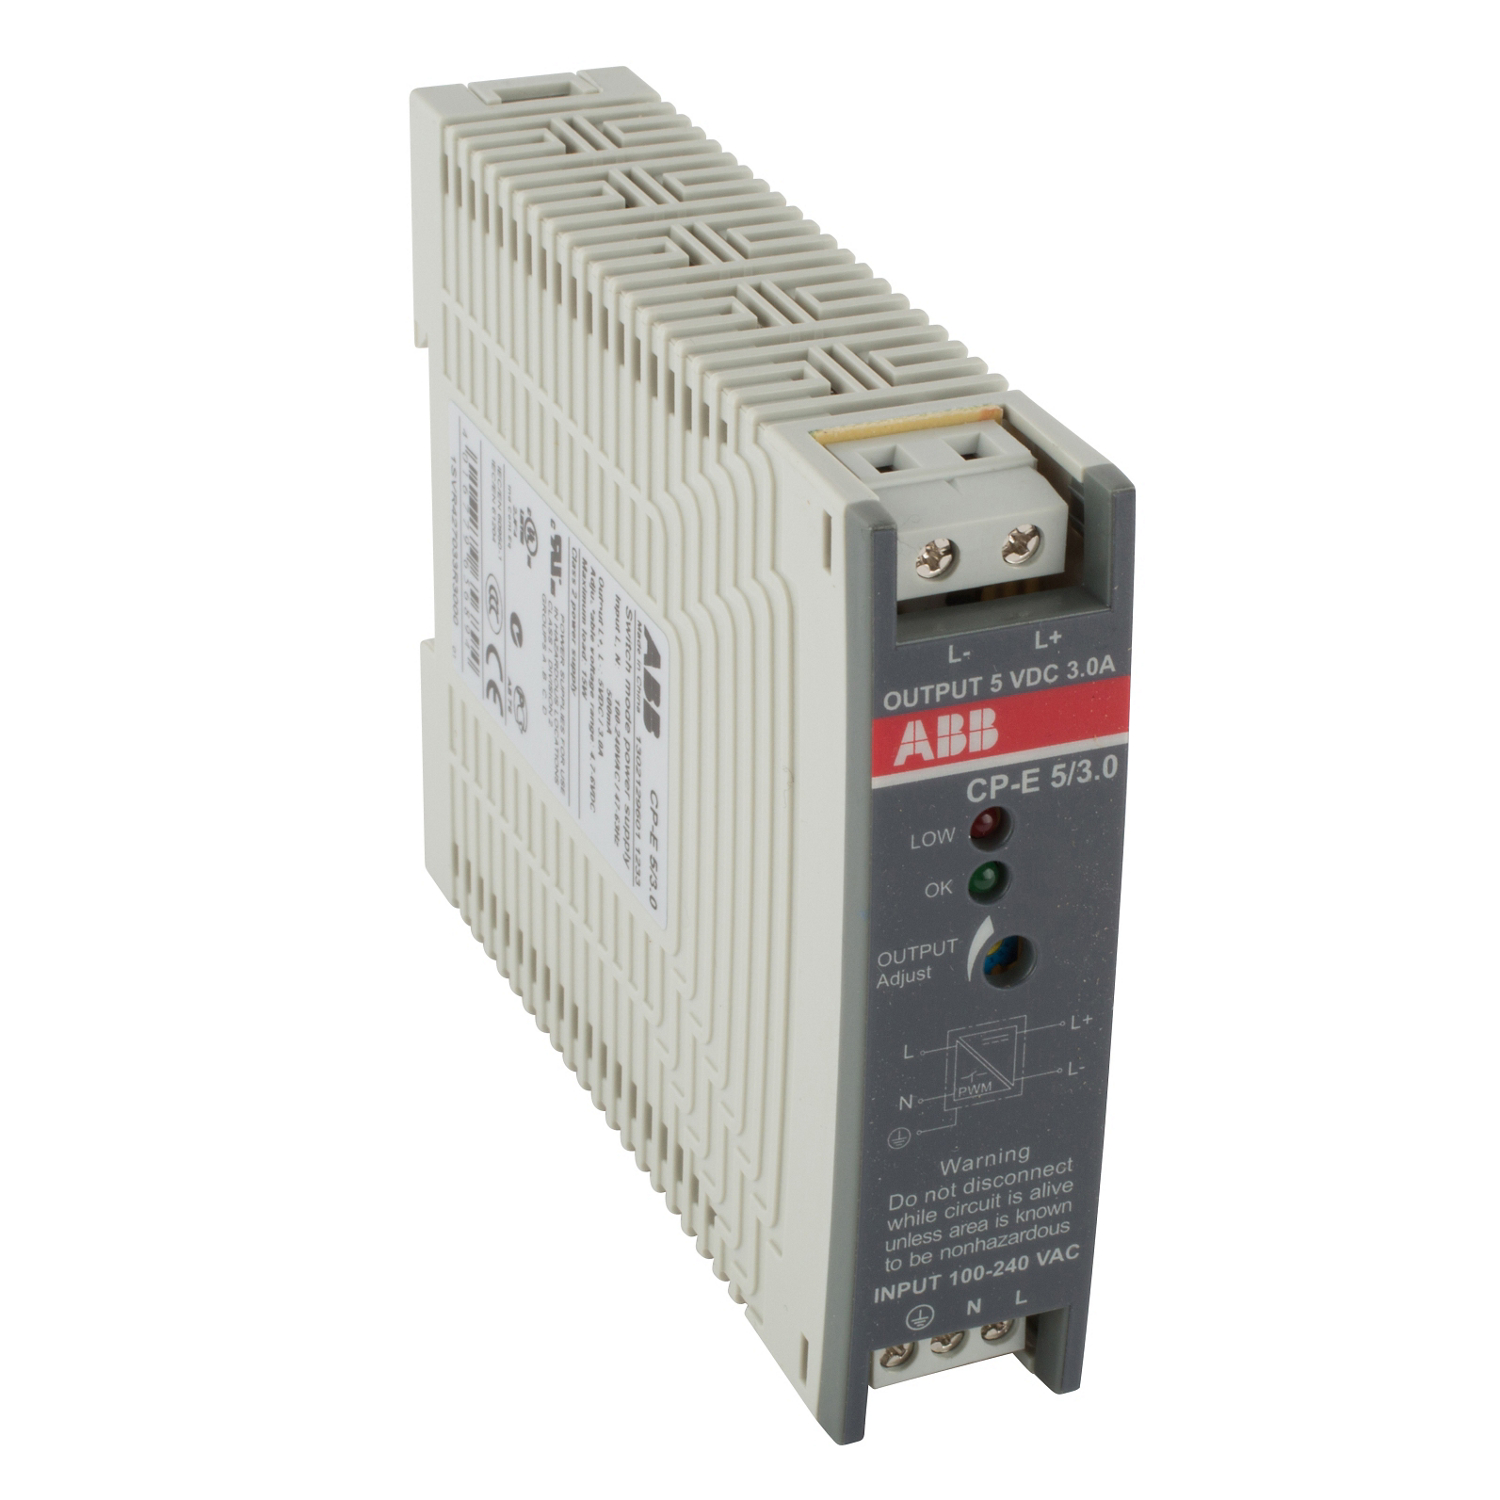 Power supply with 90 264 VAC or 120 375